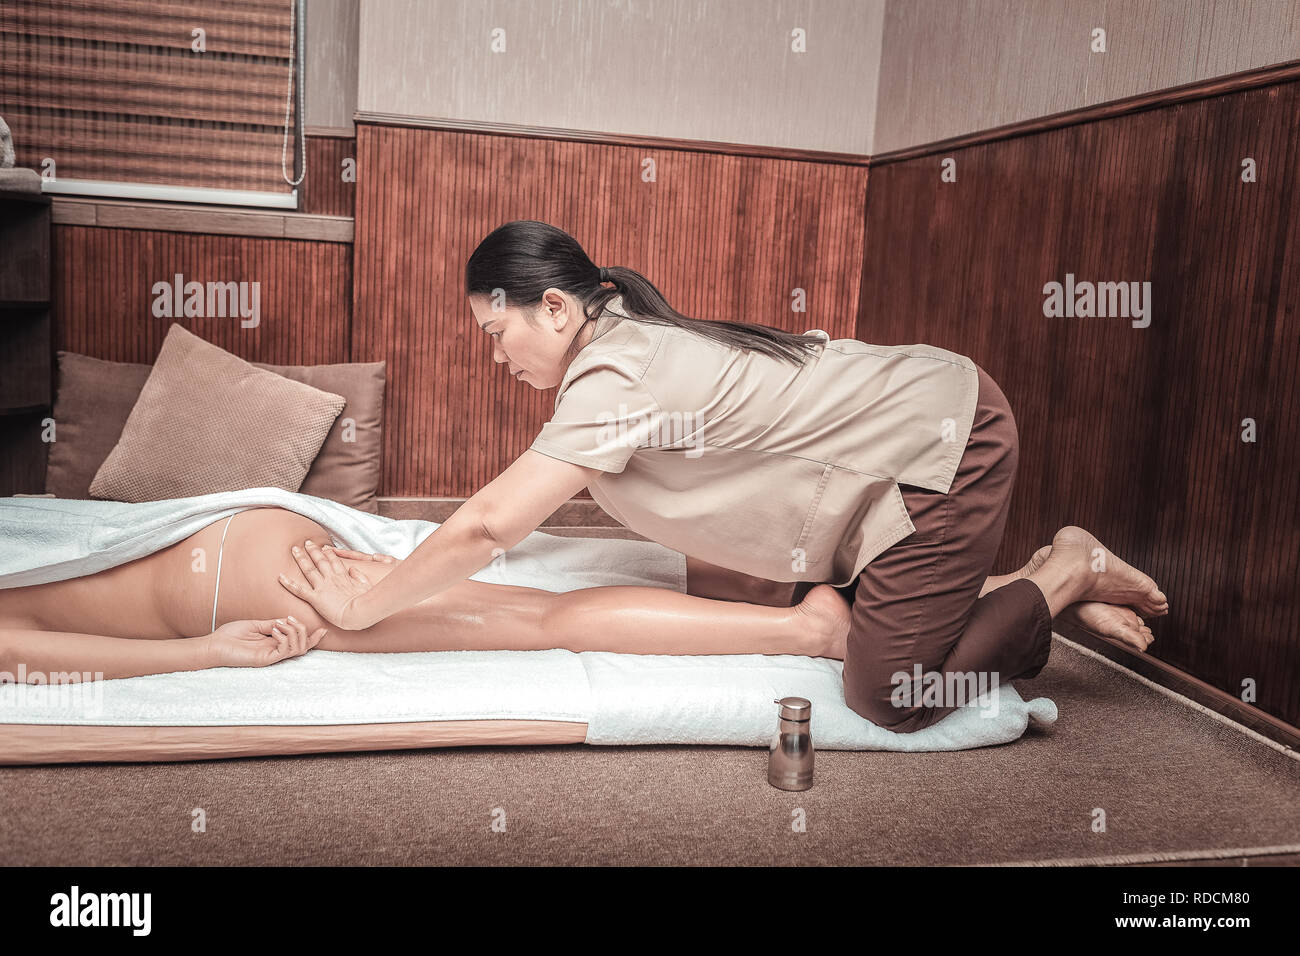 Serious female masseuse massaging her clients body Stock Photo